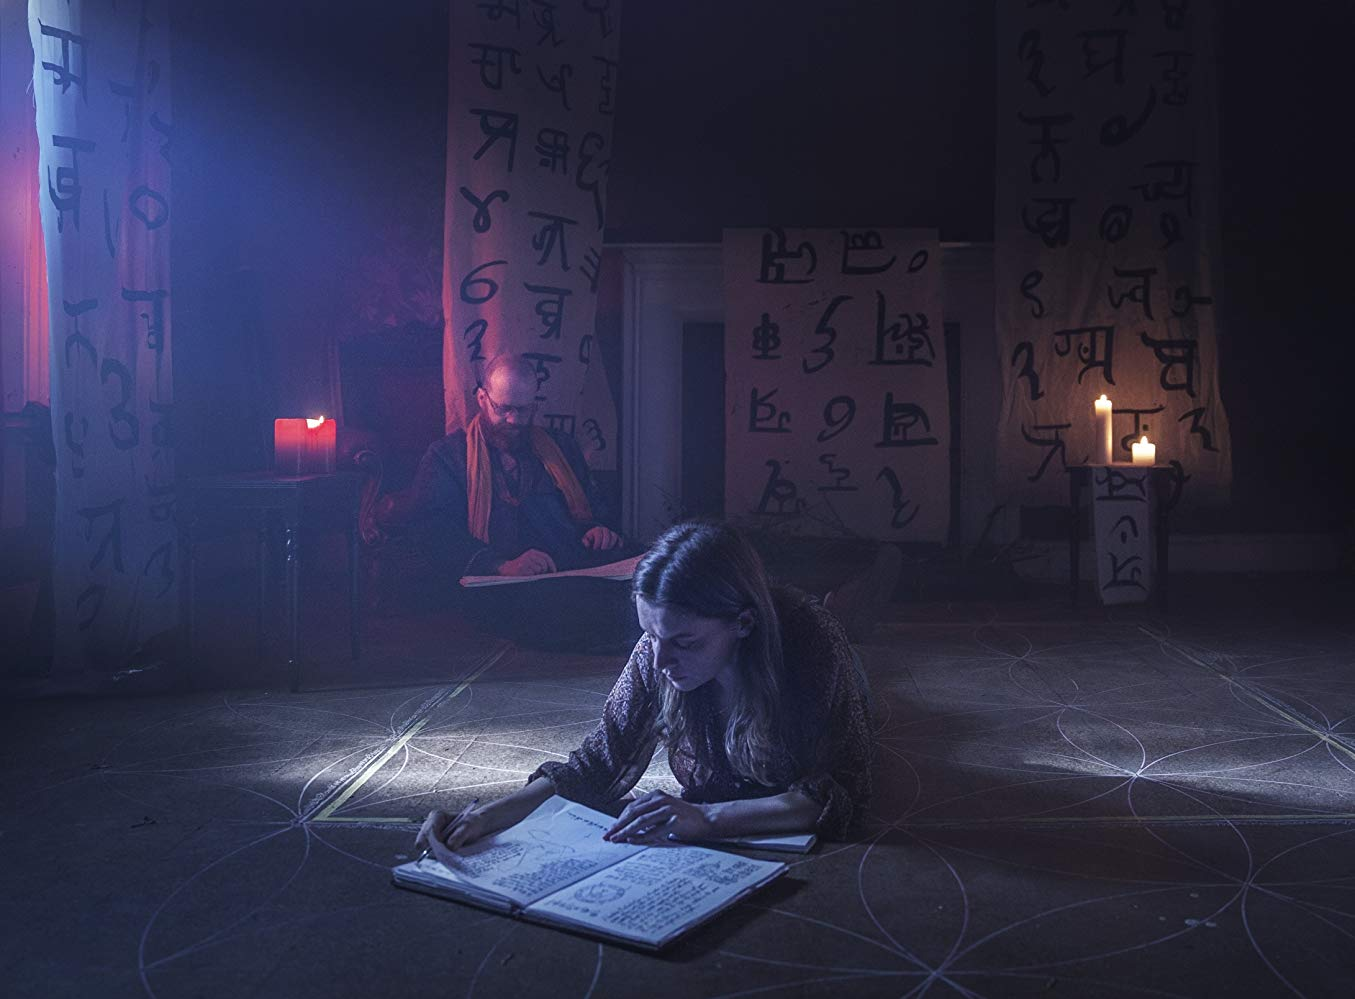 This is a still image from the movie A Dark Song.